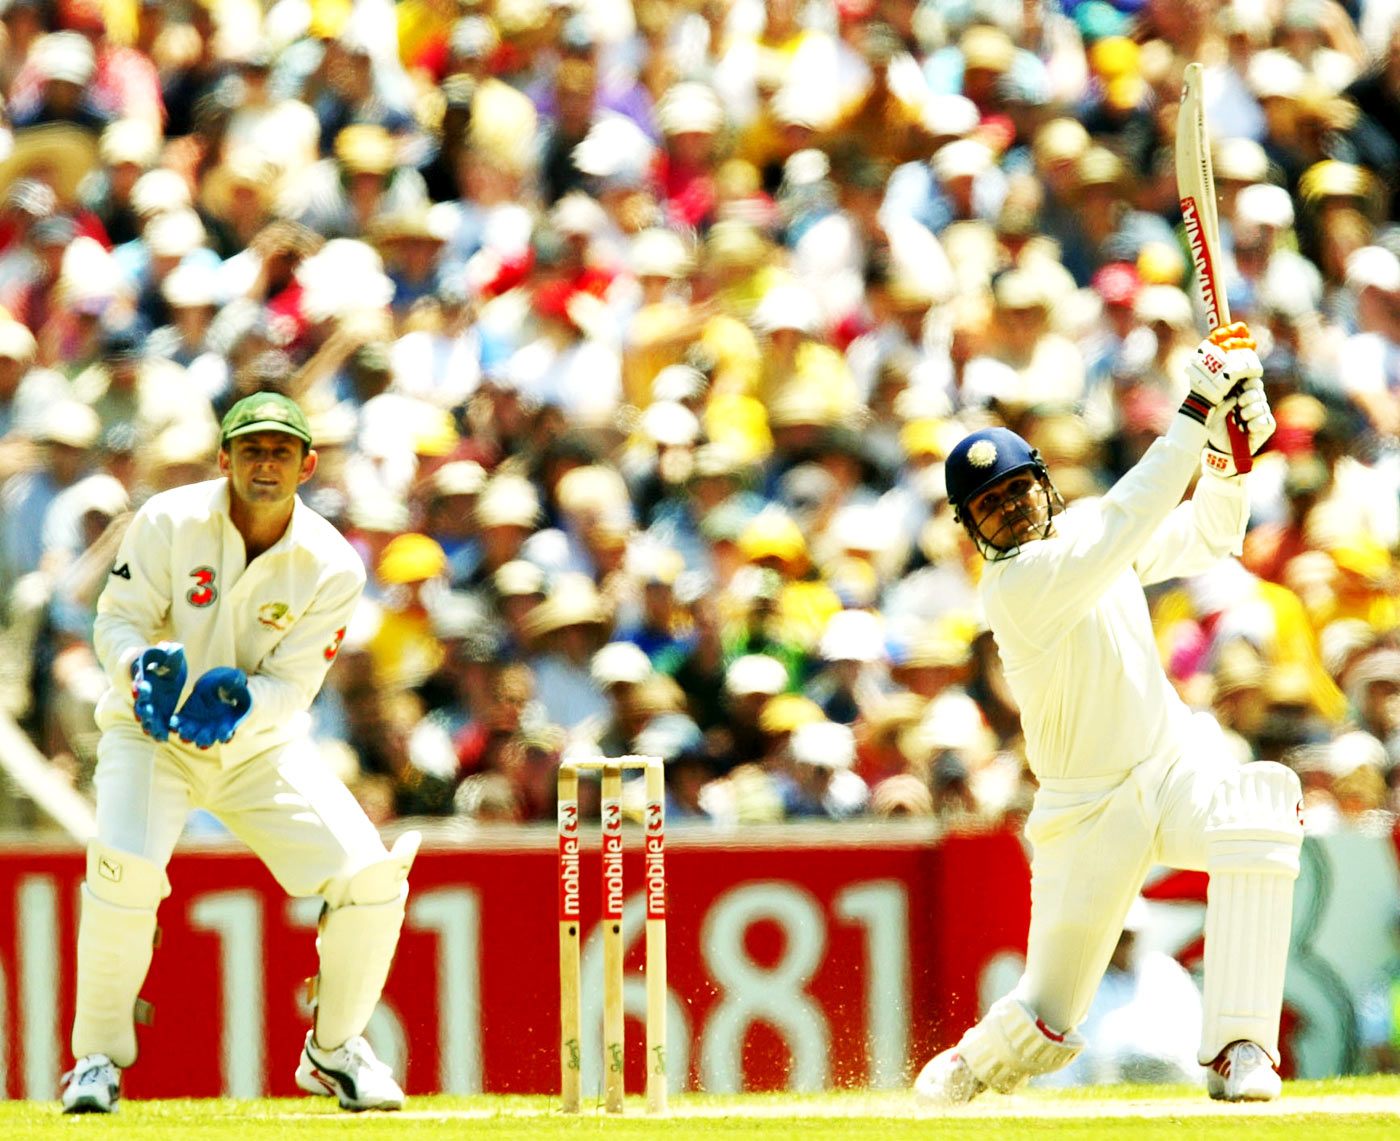 Virender Sehwag opened proceedings in 2003 with a fizz 'n pop